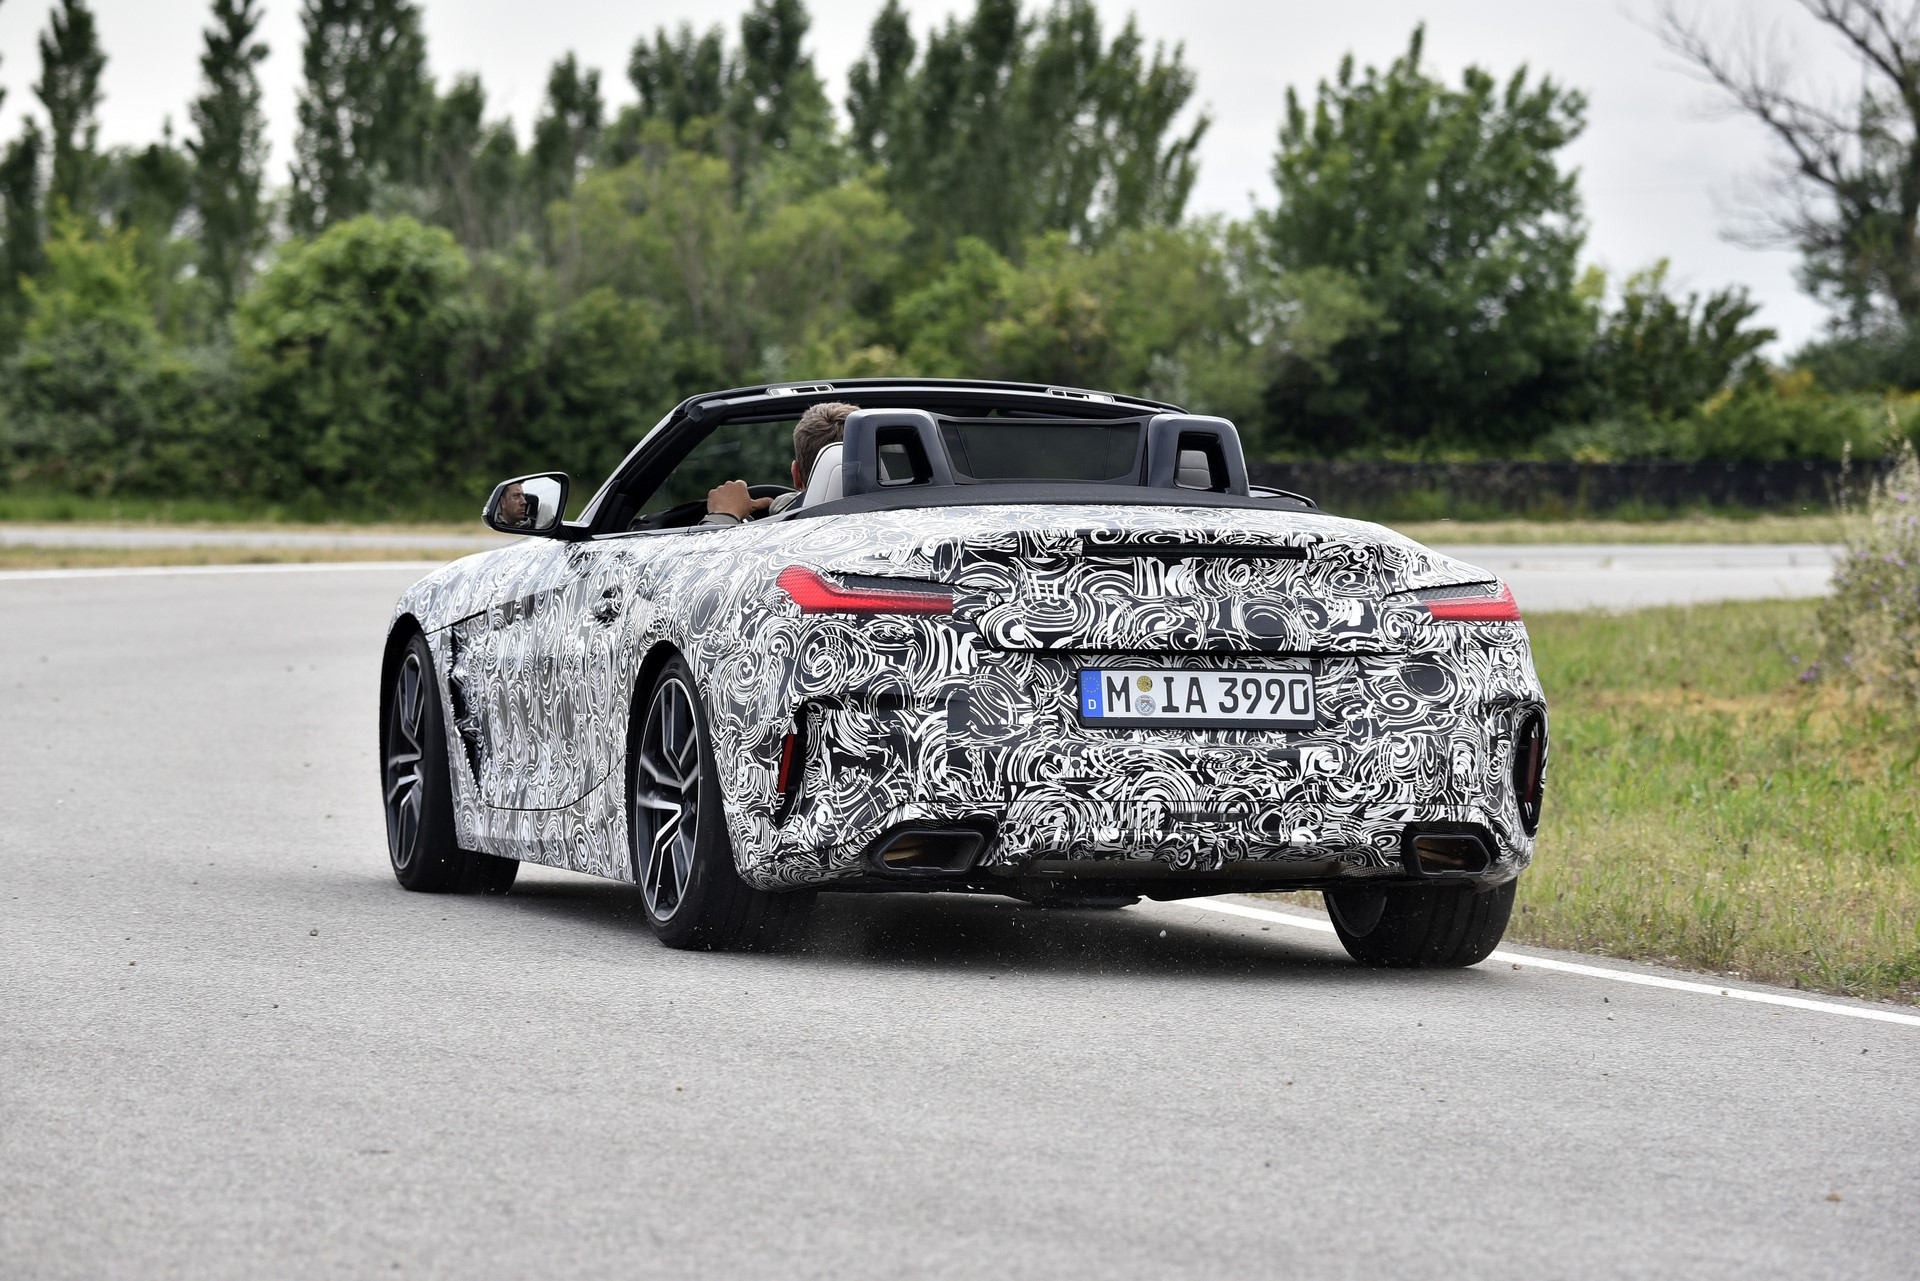 BMW Z4 M40i 2019 official spy photos (2)